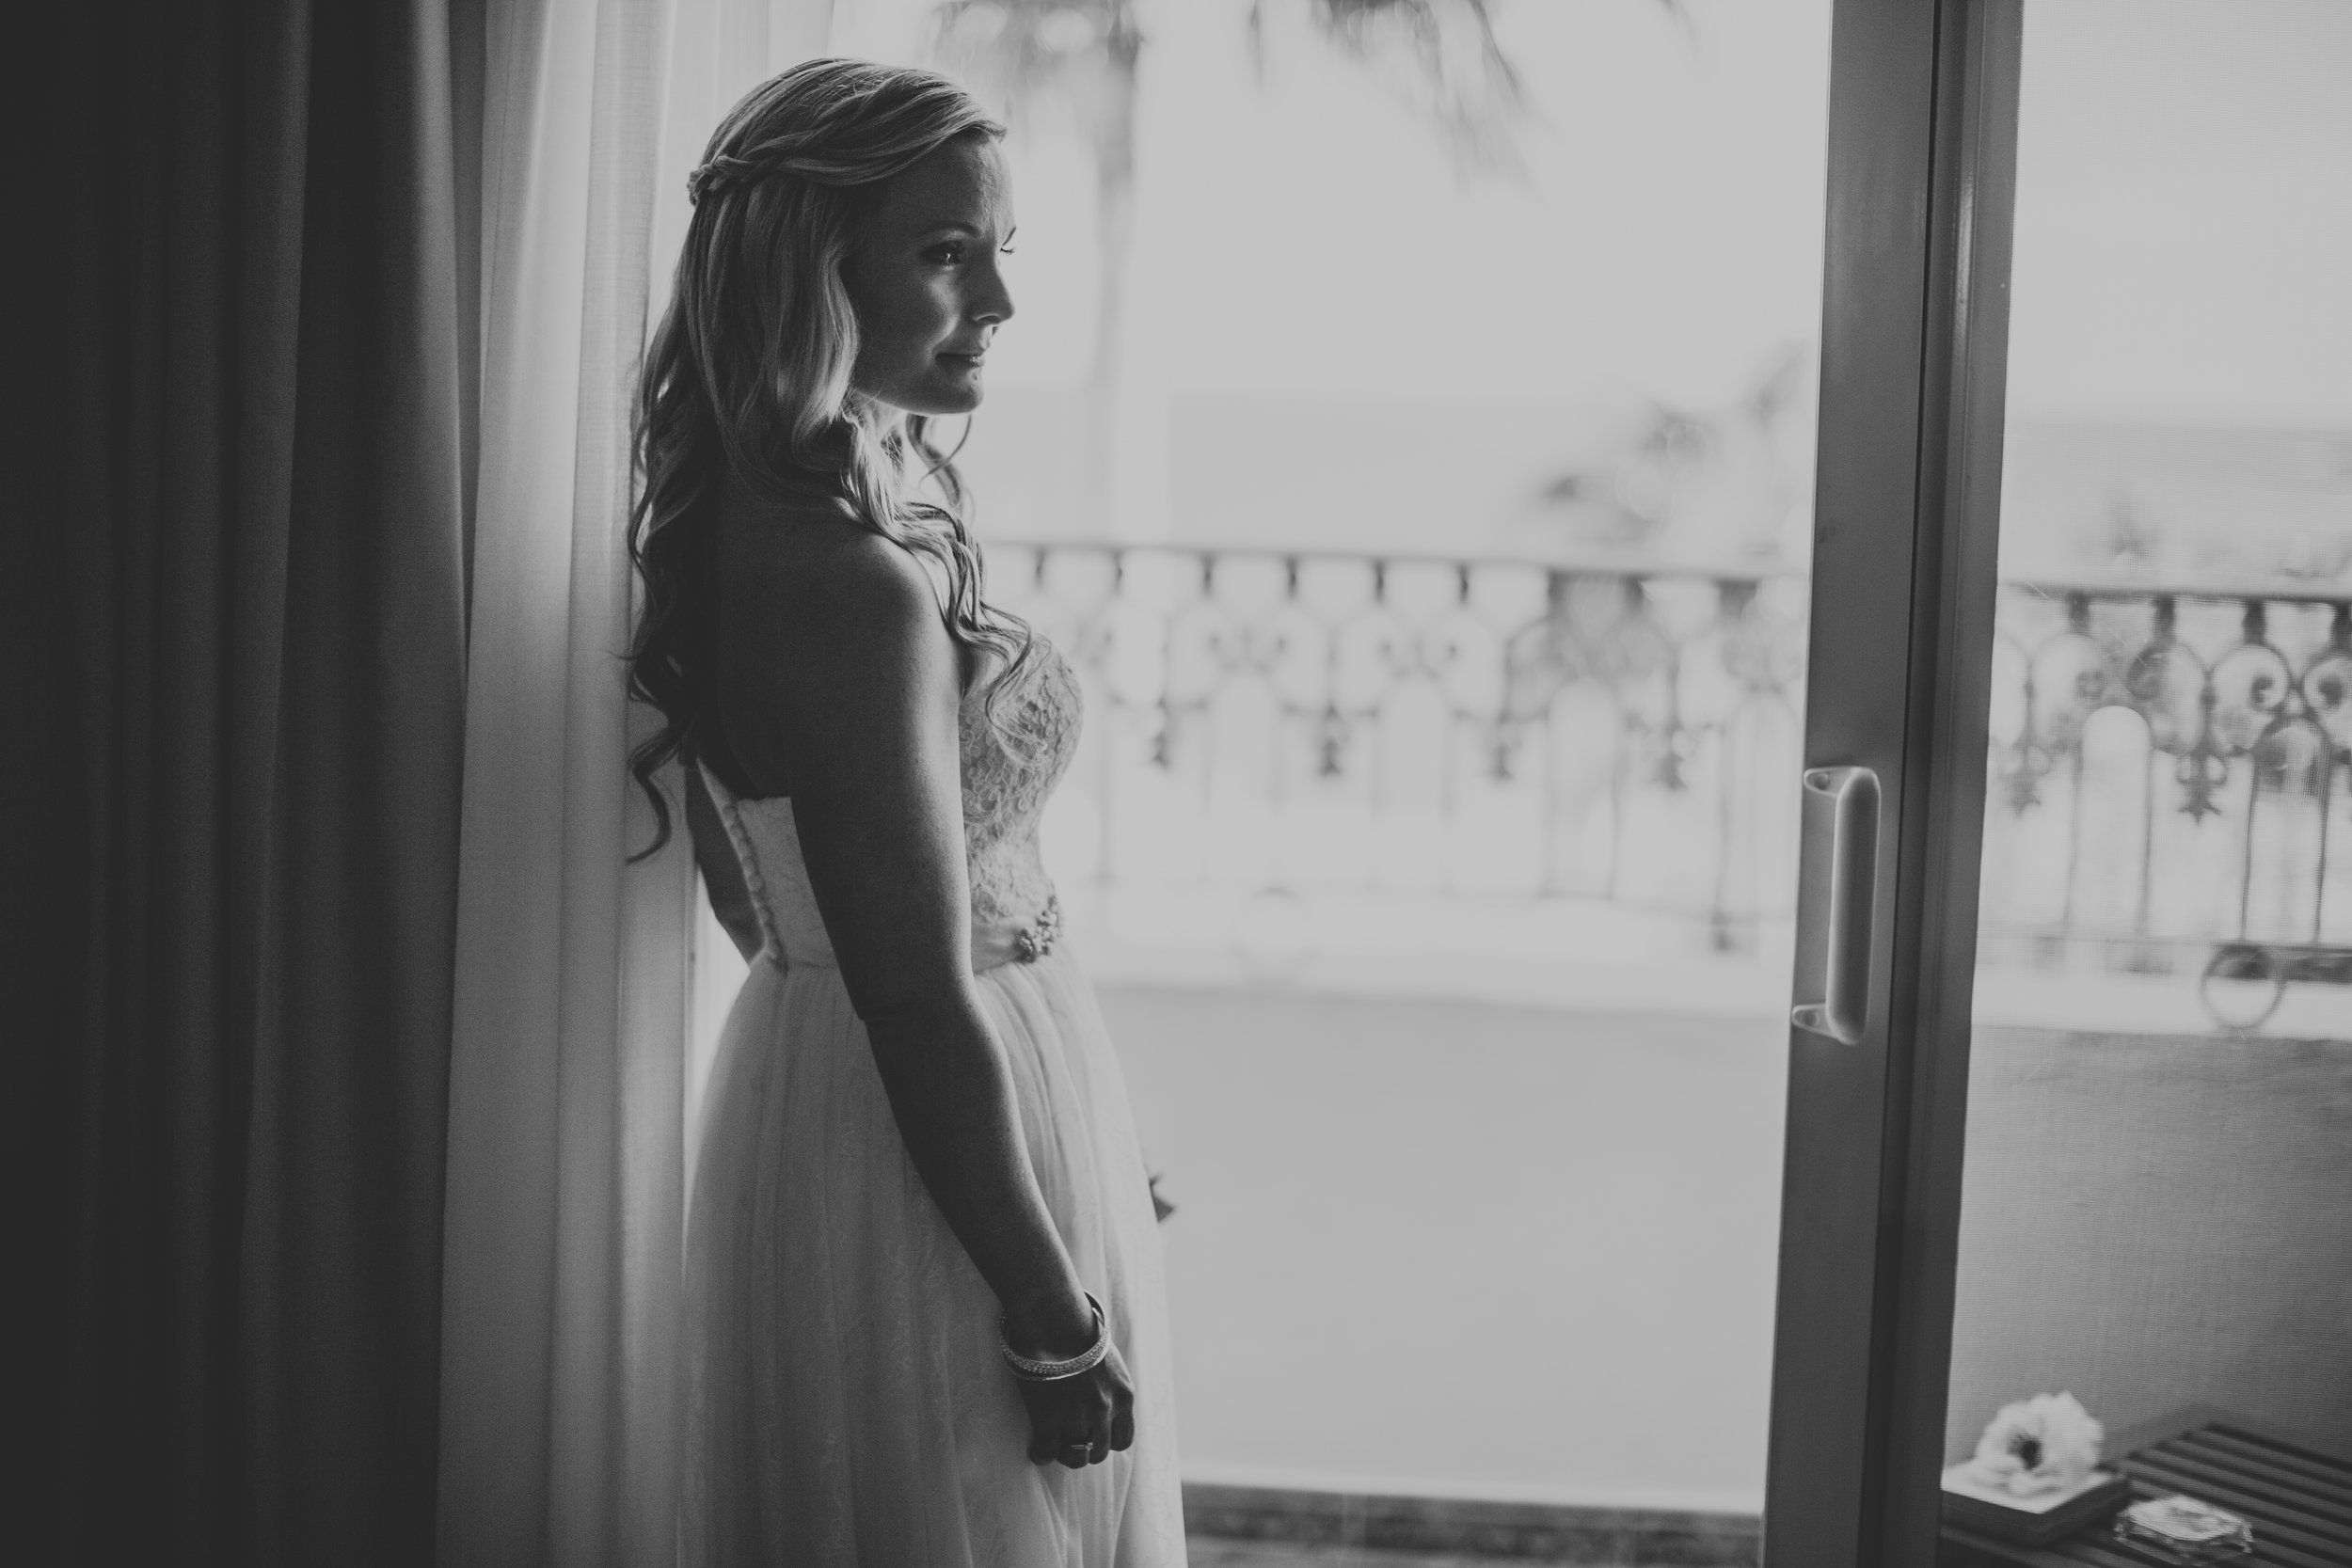 Ashleynickdestinationweddingmexicorivkahphotography-64.jpg